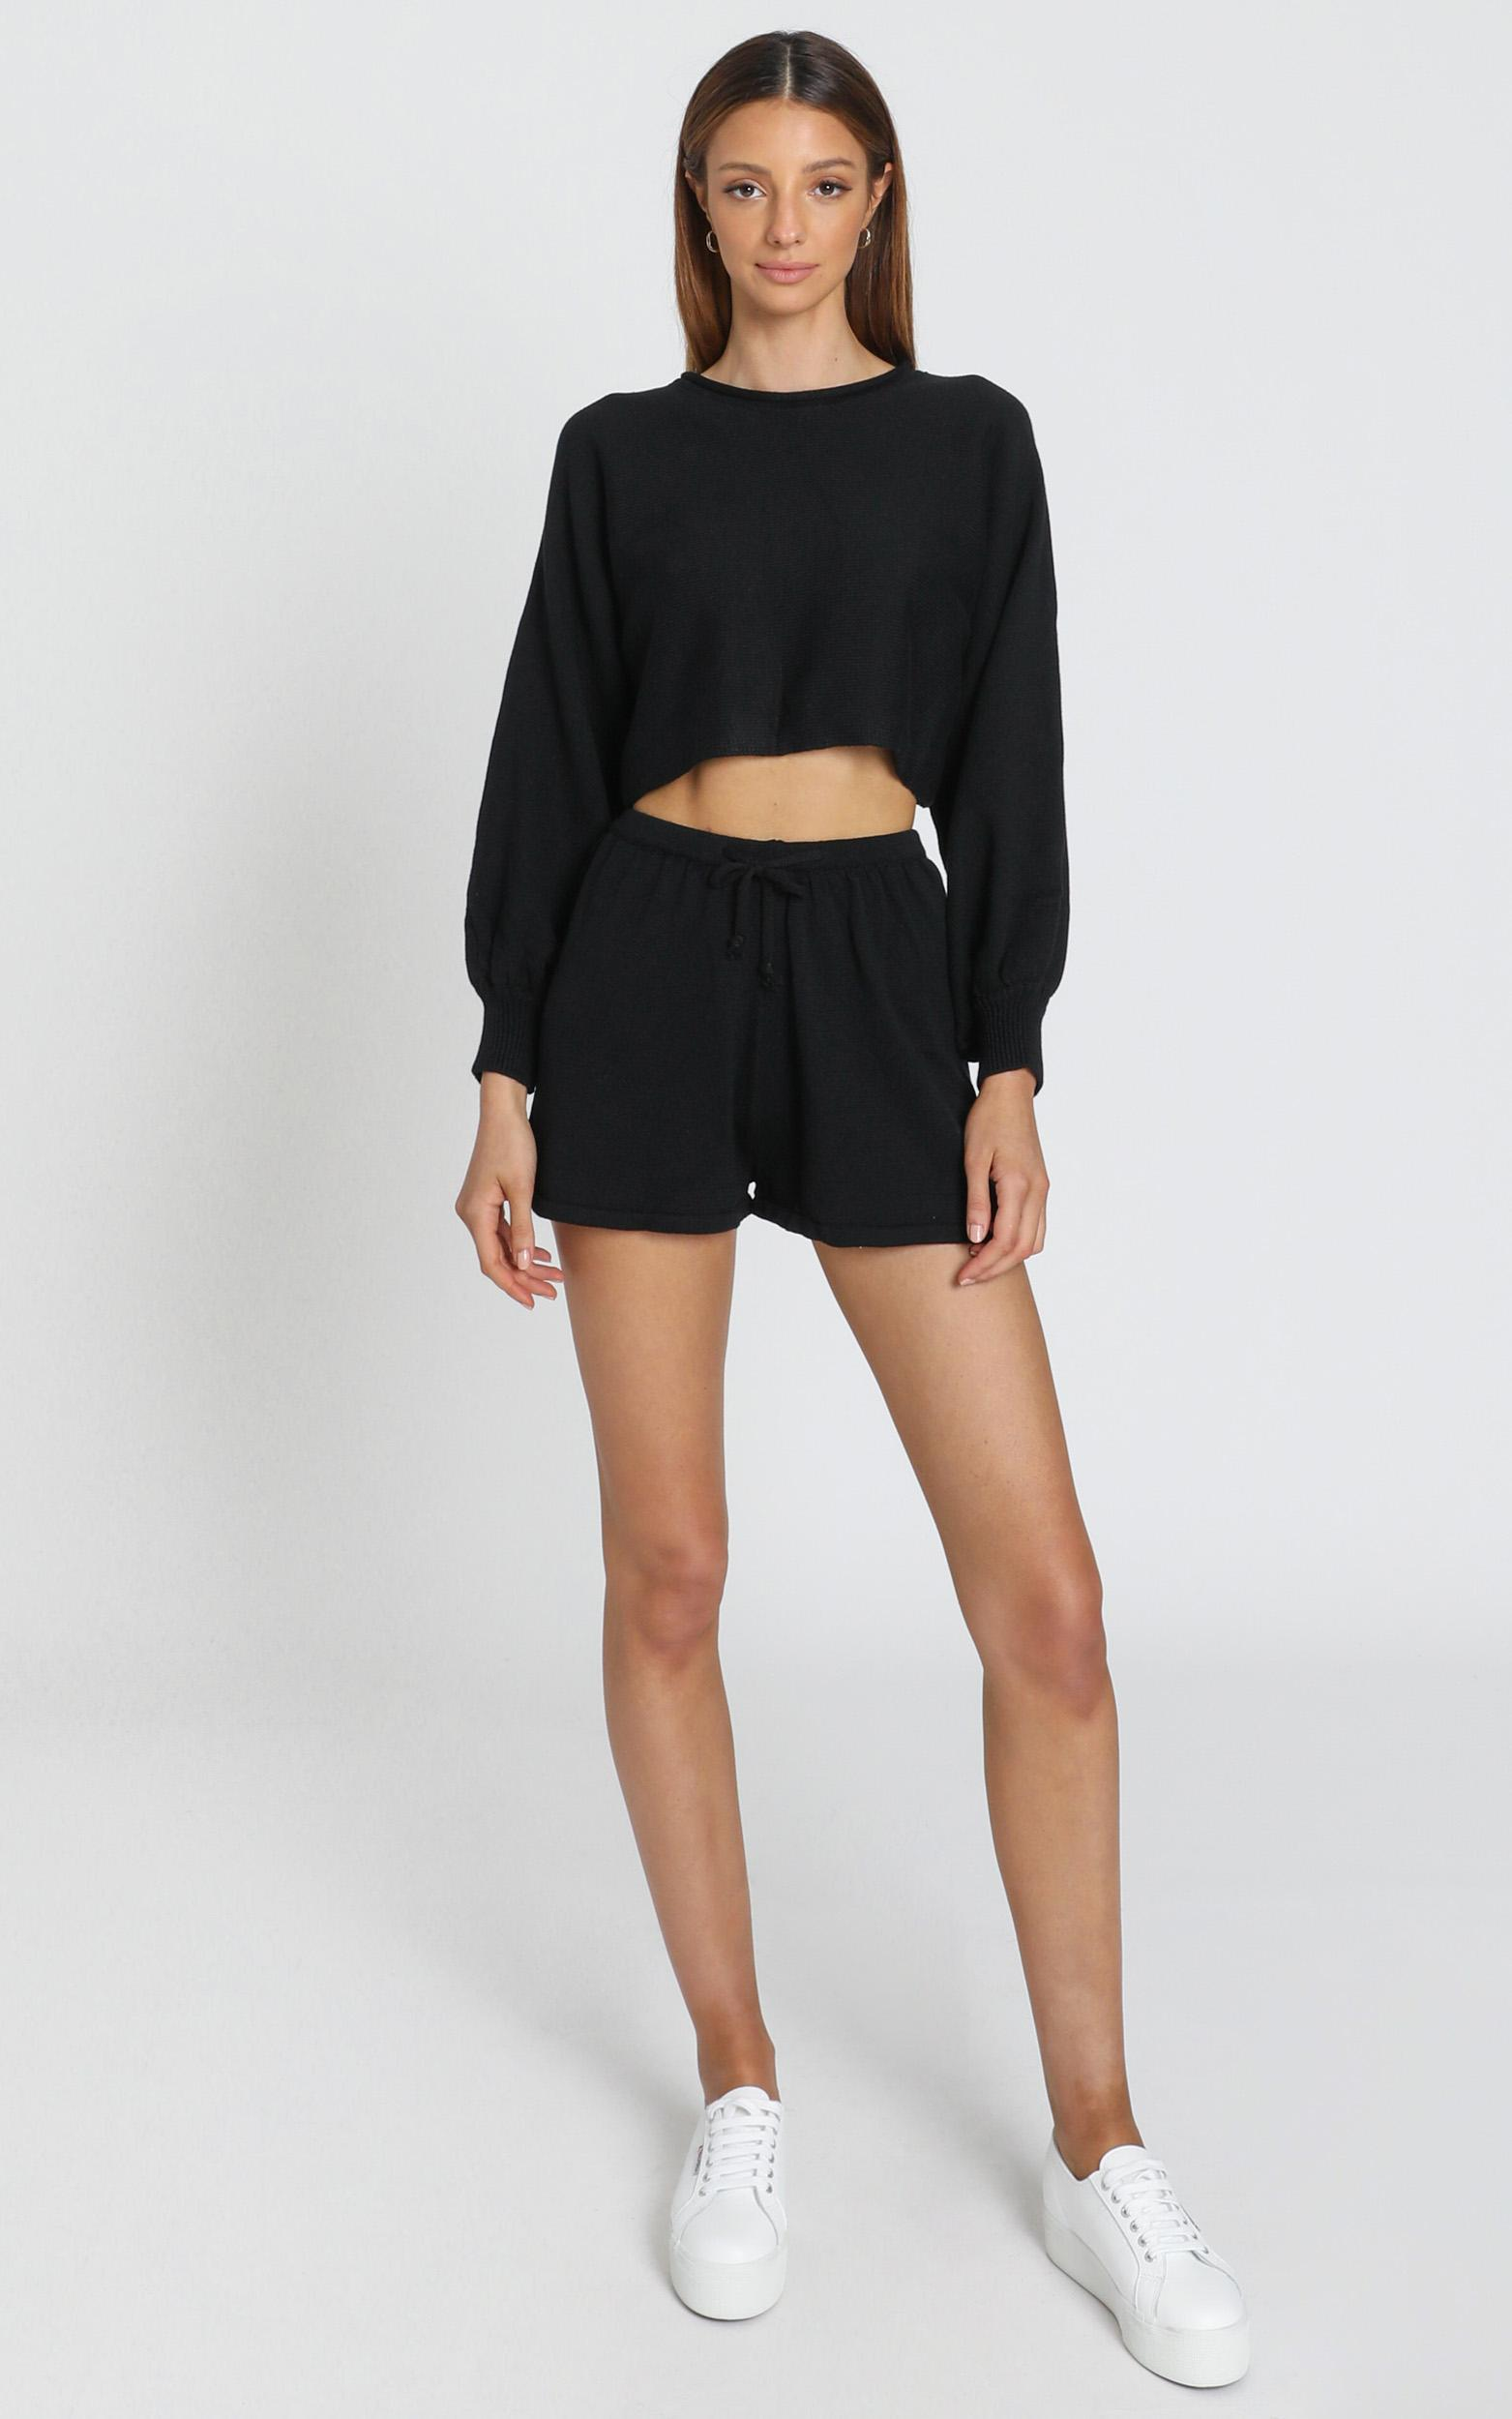 Hartley Knitted Shorts In Black - 8 (S), Black, hi-res image number null